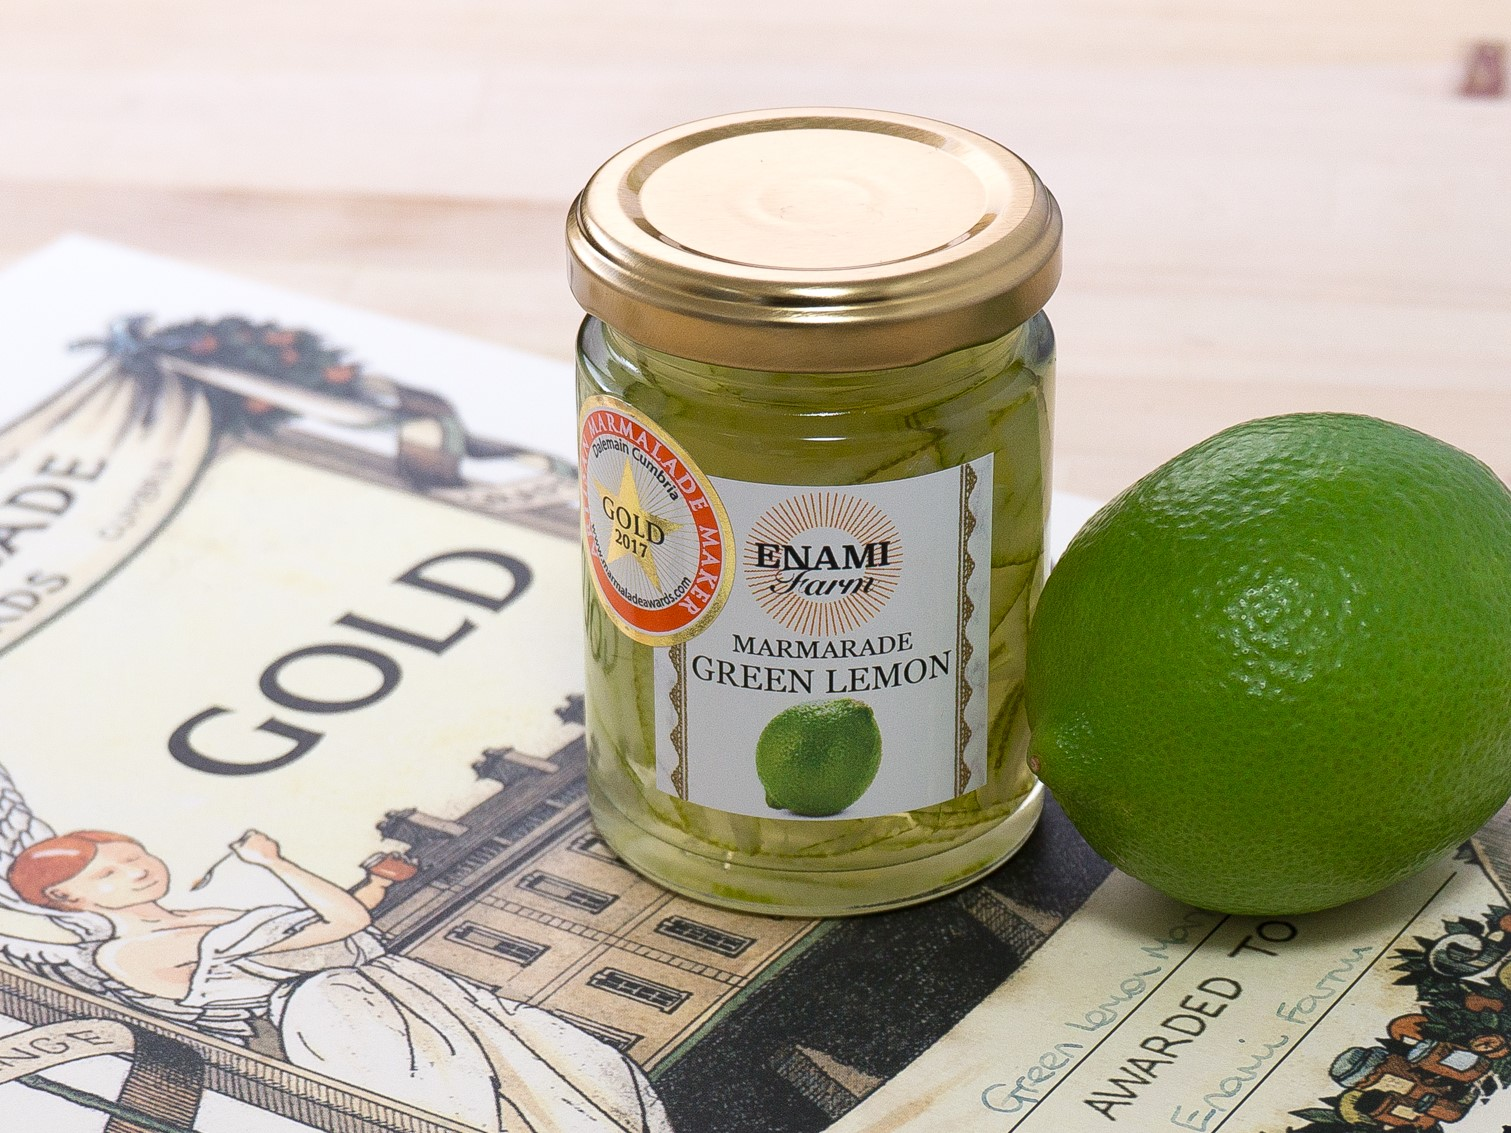 ENAMIFARM GREEN LEMON MARMARADE